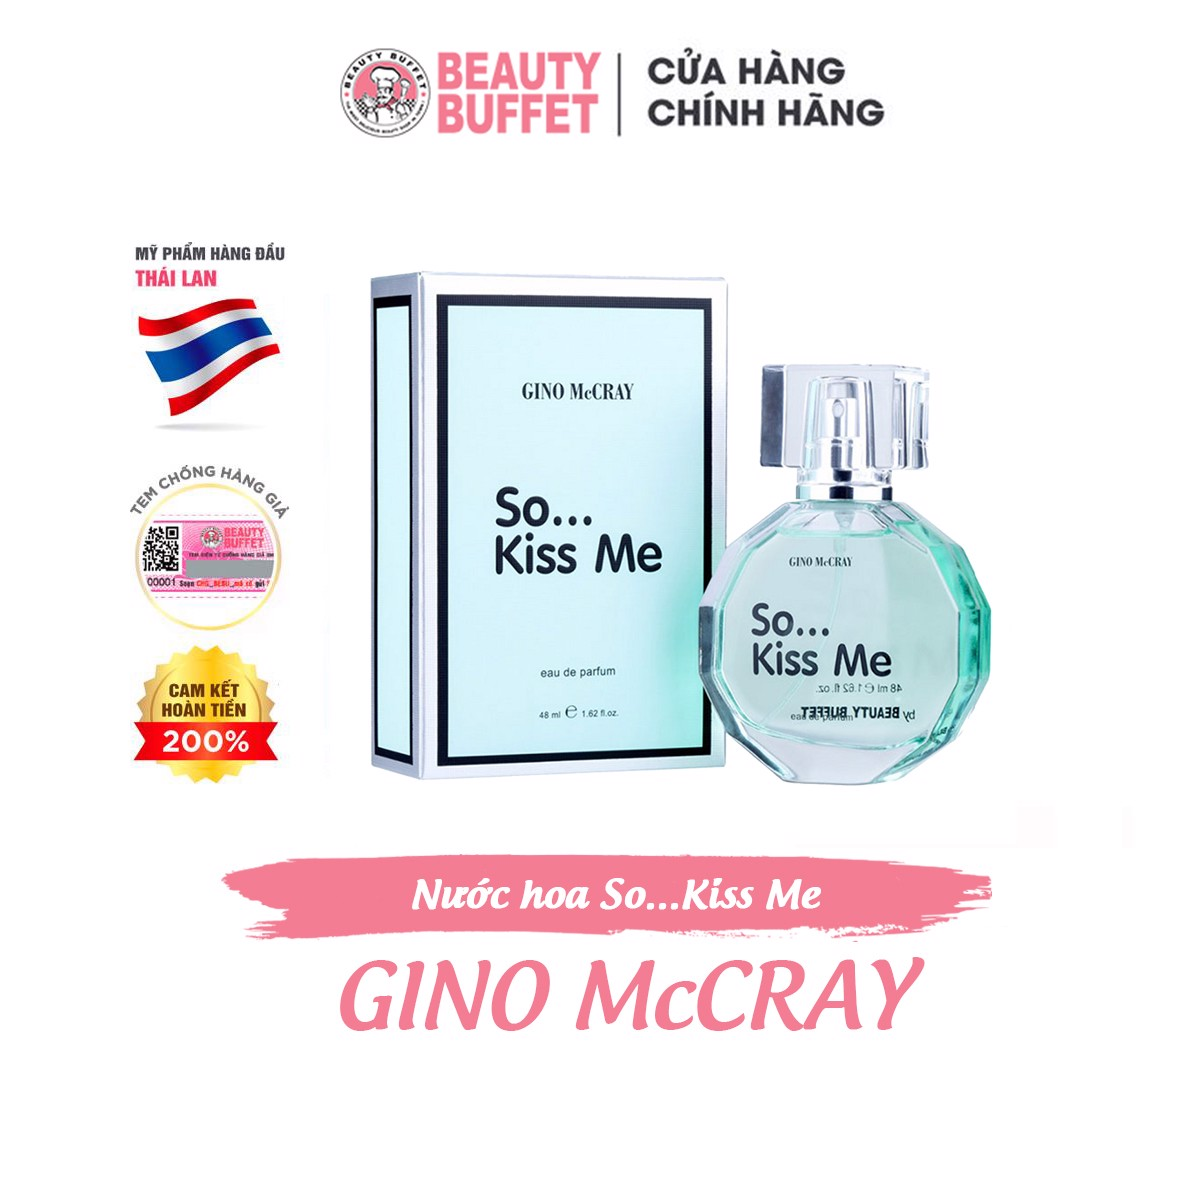 Nước hoa Beauty Buffet GINO McCRAY So...Kiss Me 48ml